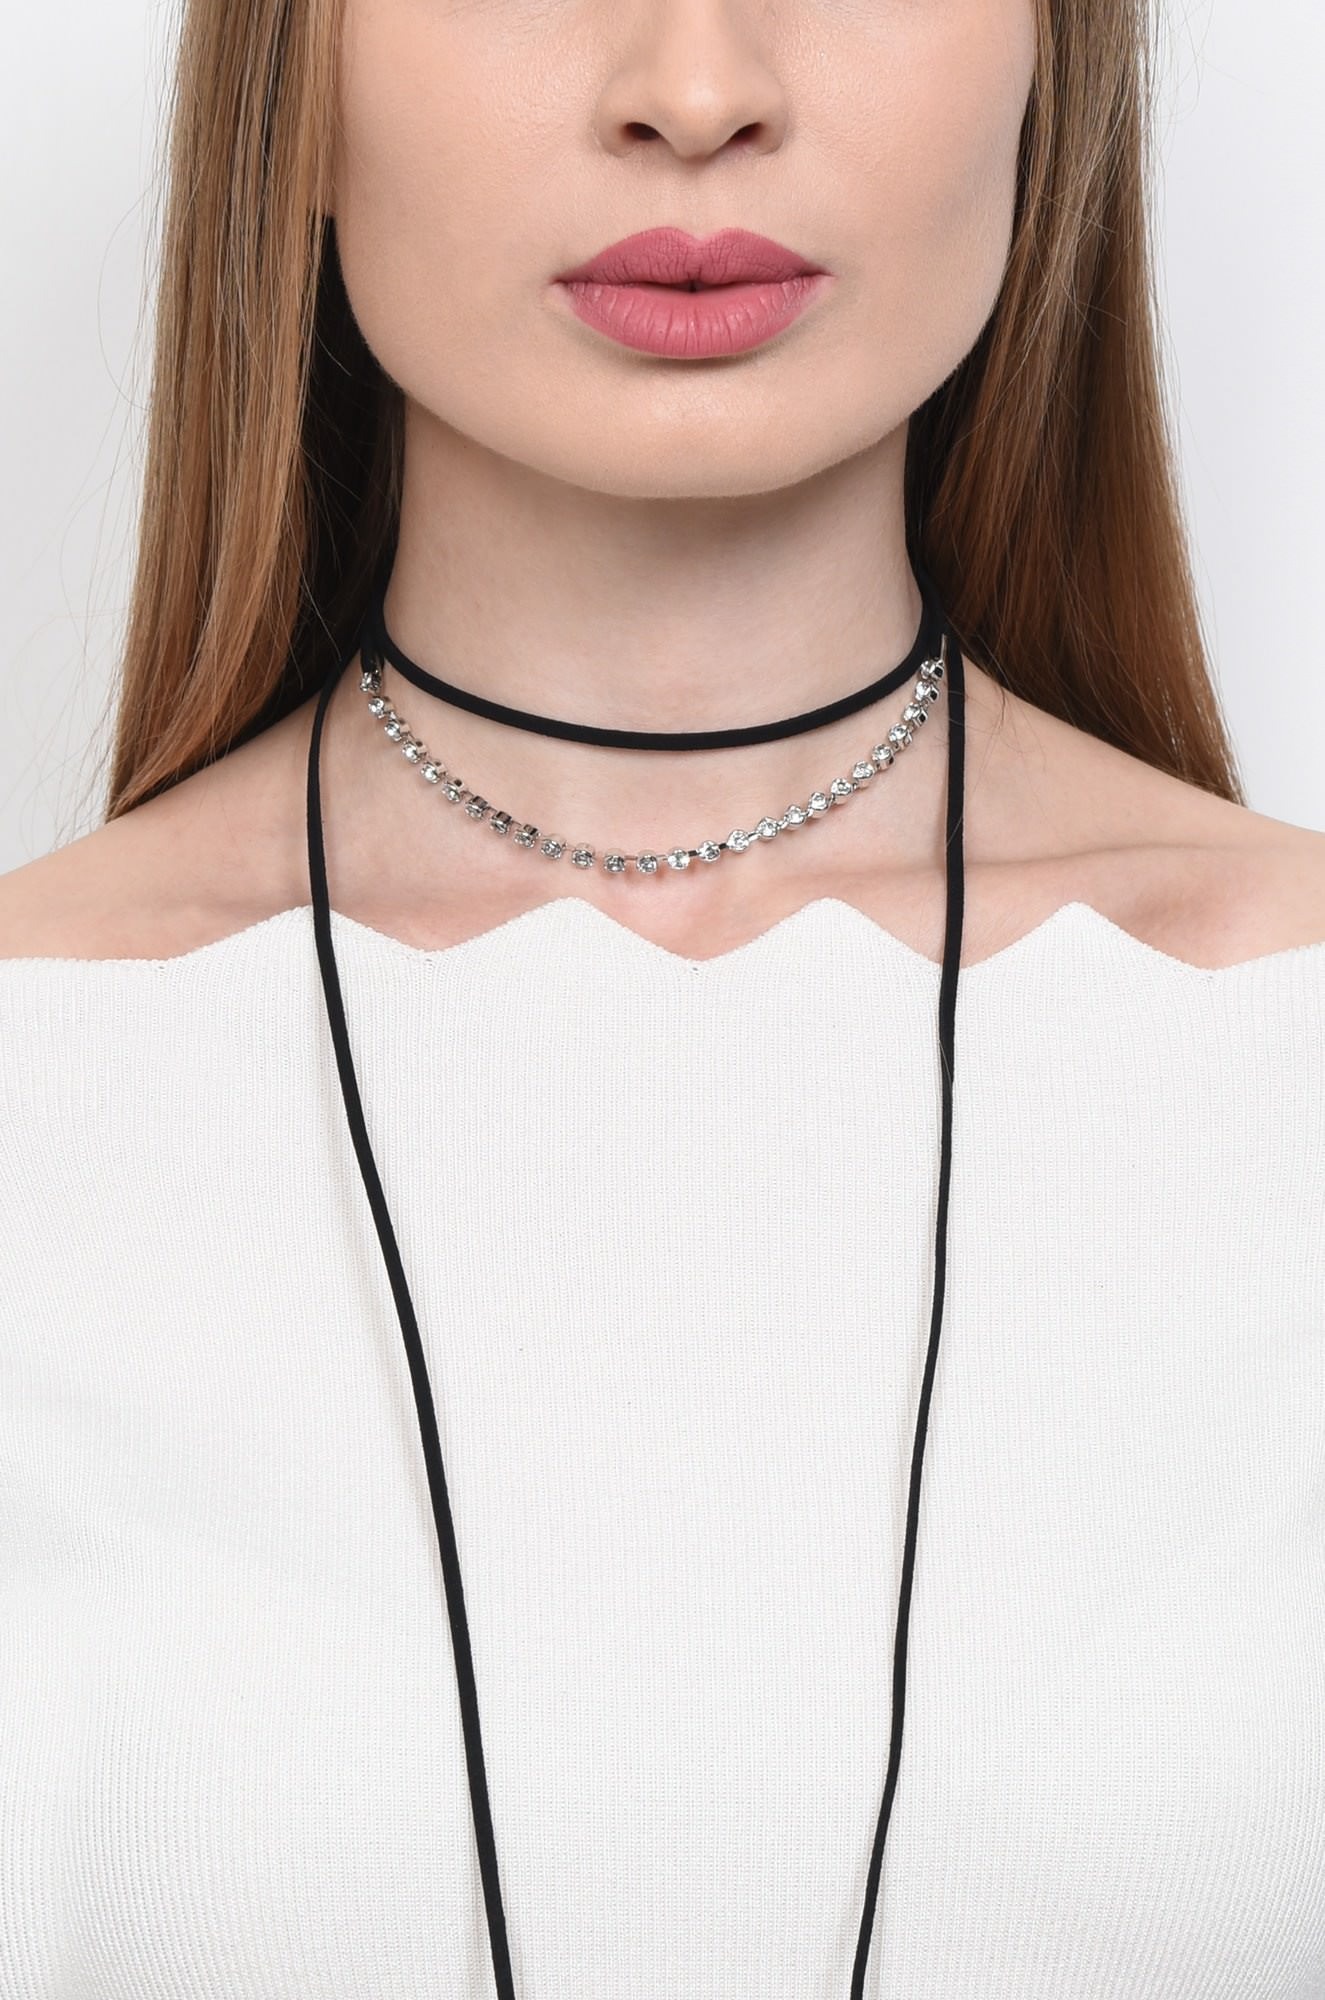 0 - COLIER TIP CHOCKER GB15021735-NEGRU